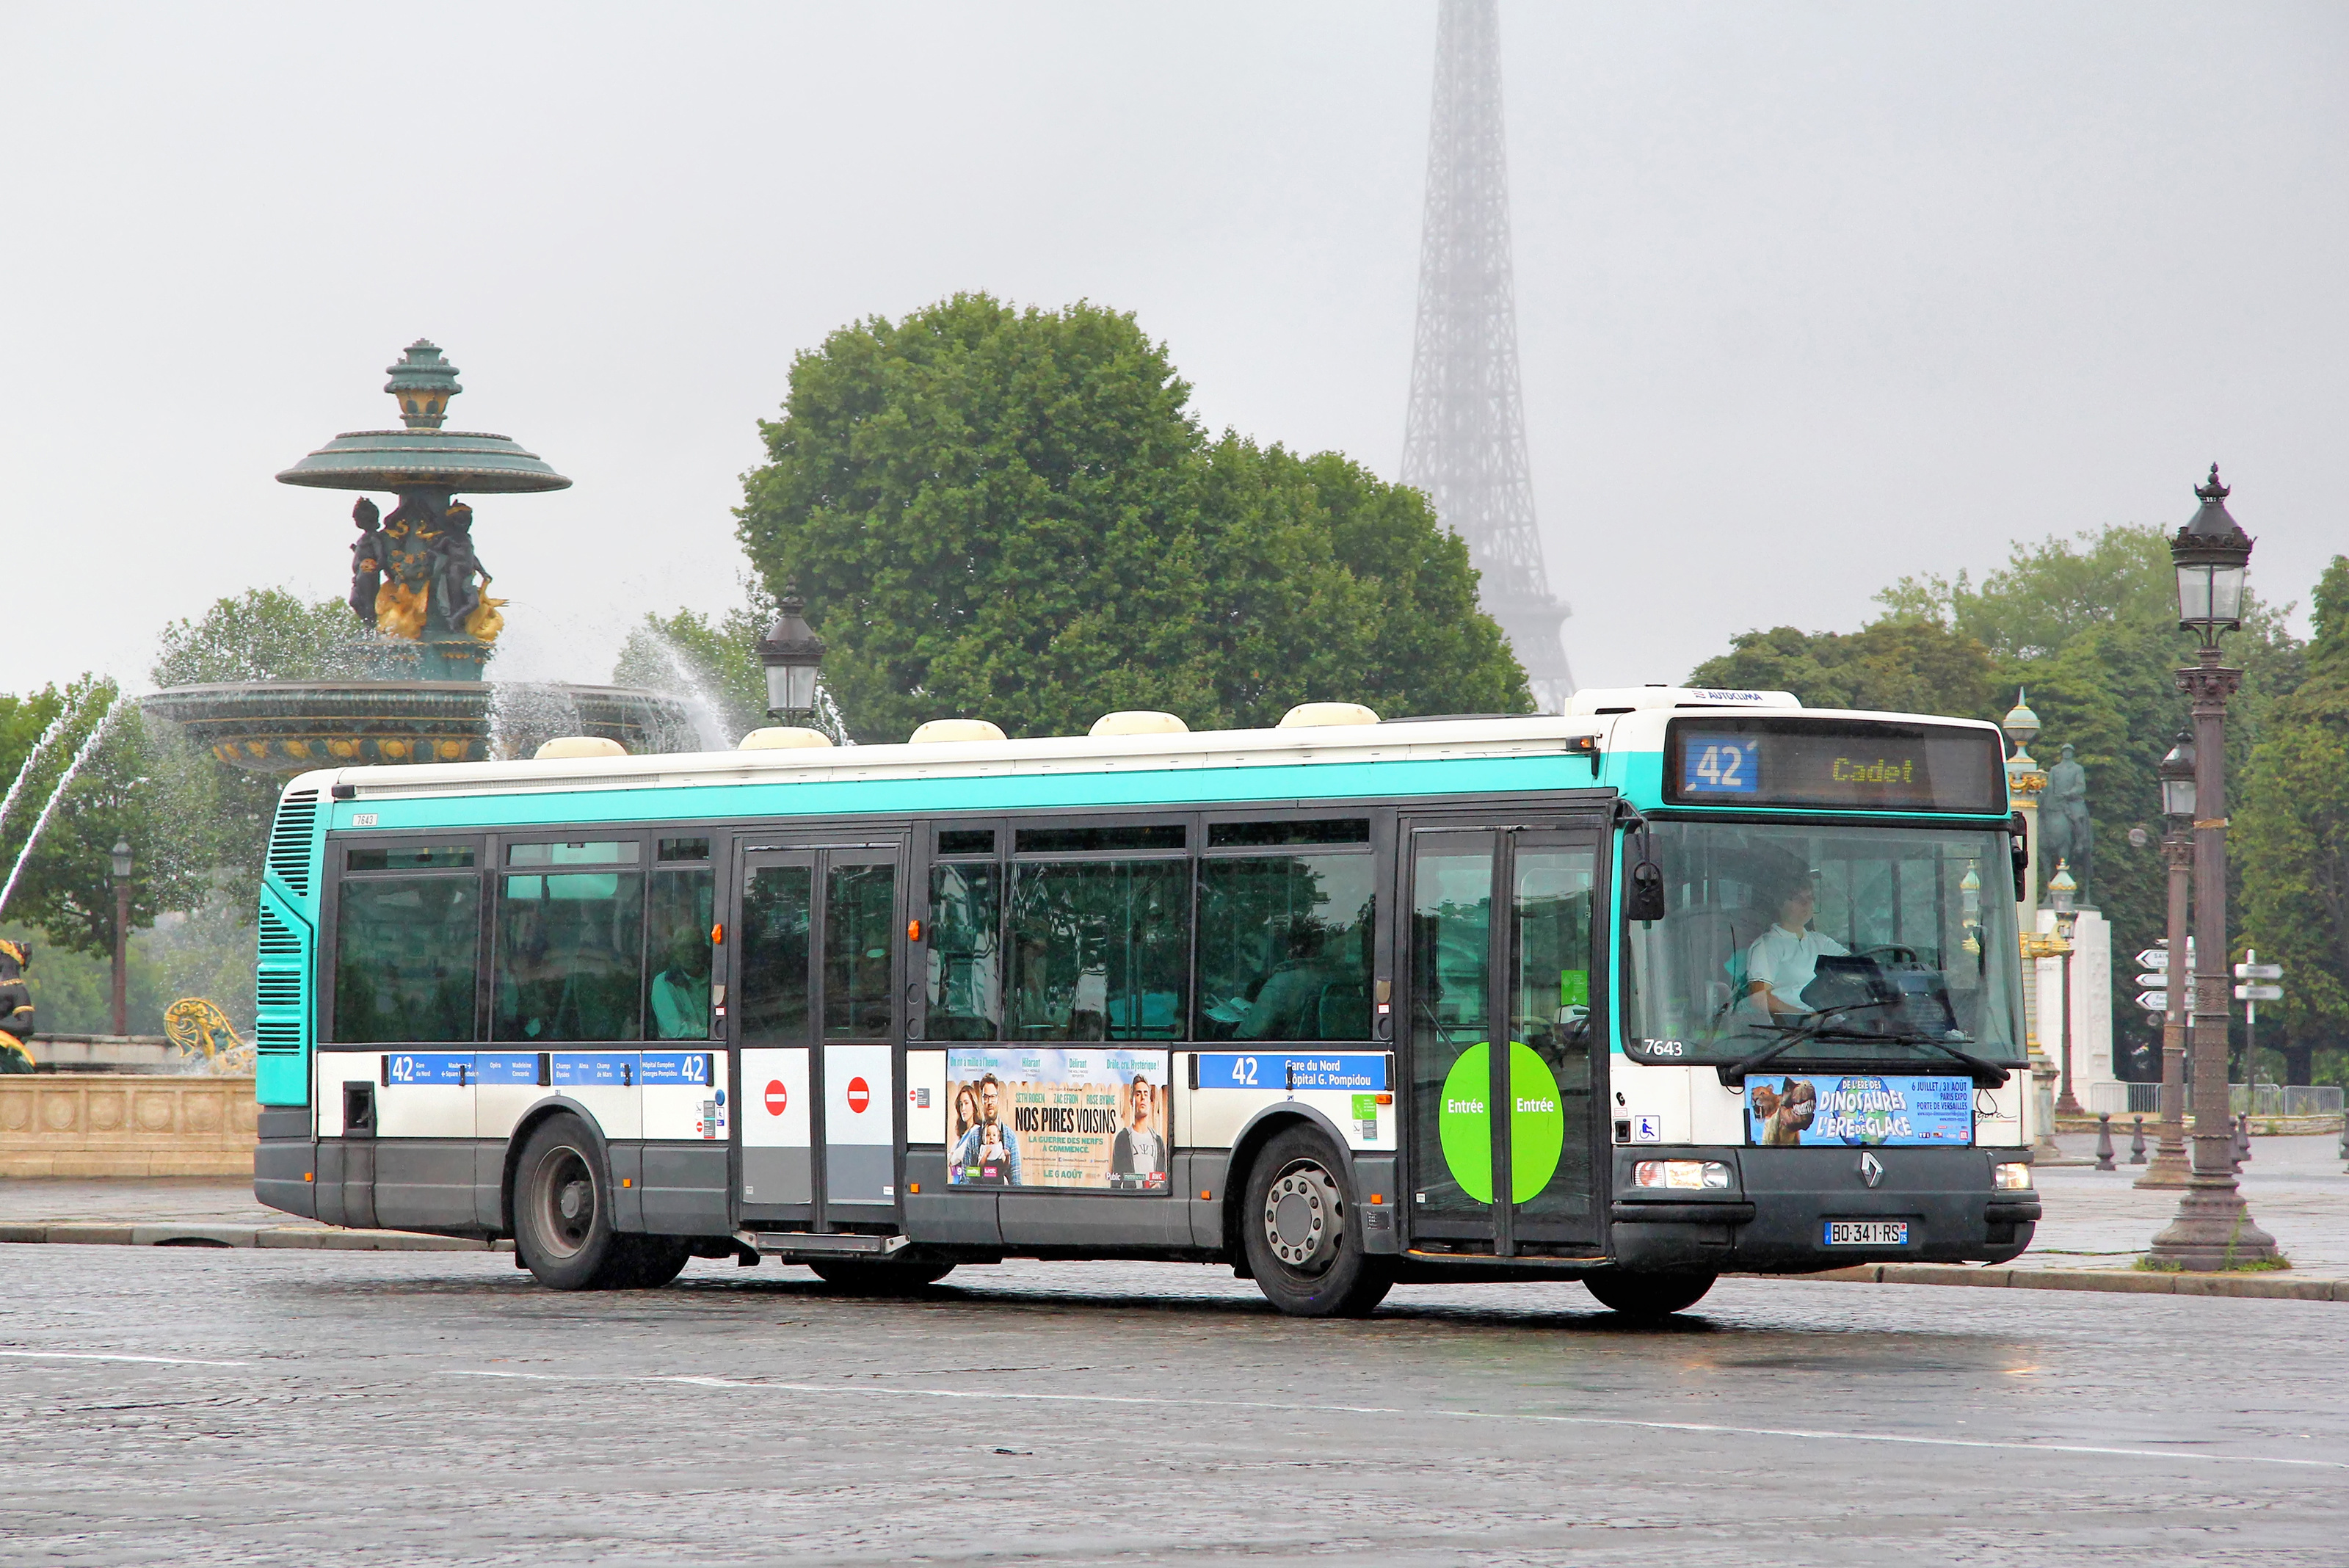 Conduent and Flowbird for Paris Ile-de-France Mobilités: Conduent Transportation and Flowbird were selected to replace all Ile-de-France bus and tram onboard ticketing platforms with next-generation technology.